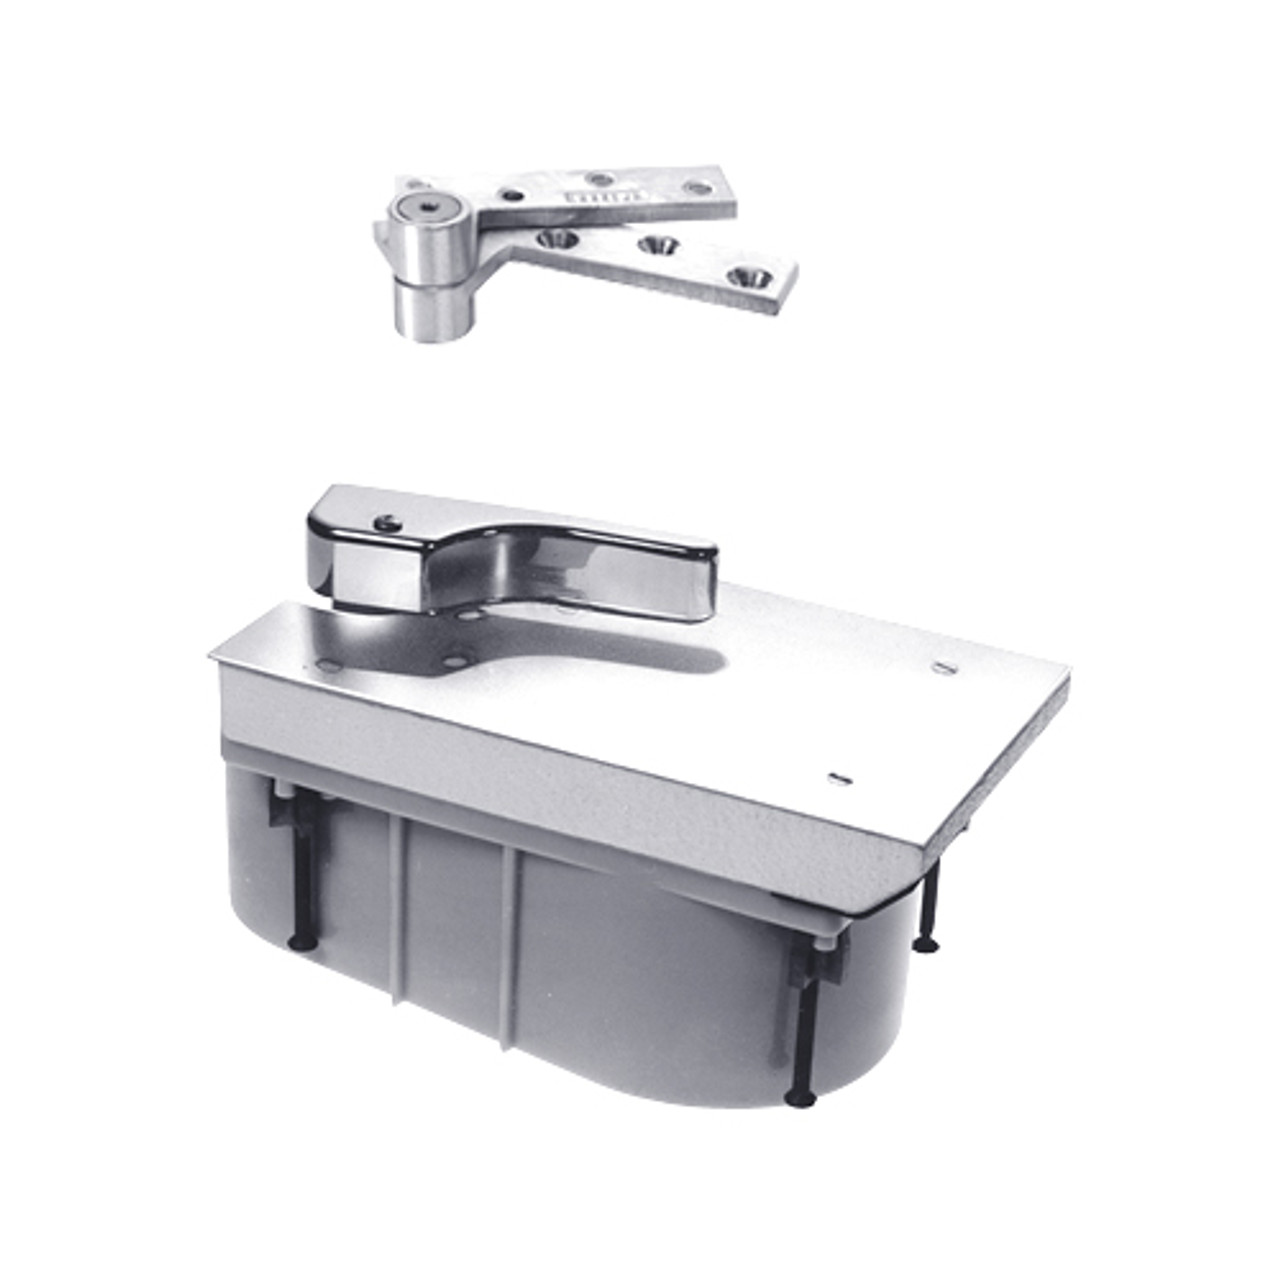 PHQ27-85S-RH-625 Rixson 27 Series Heavy Duty Quick Install Offset Hung Floor Closer in Bright Chrome Finish